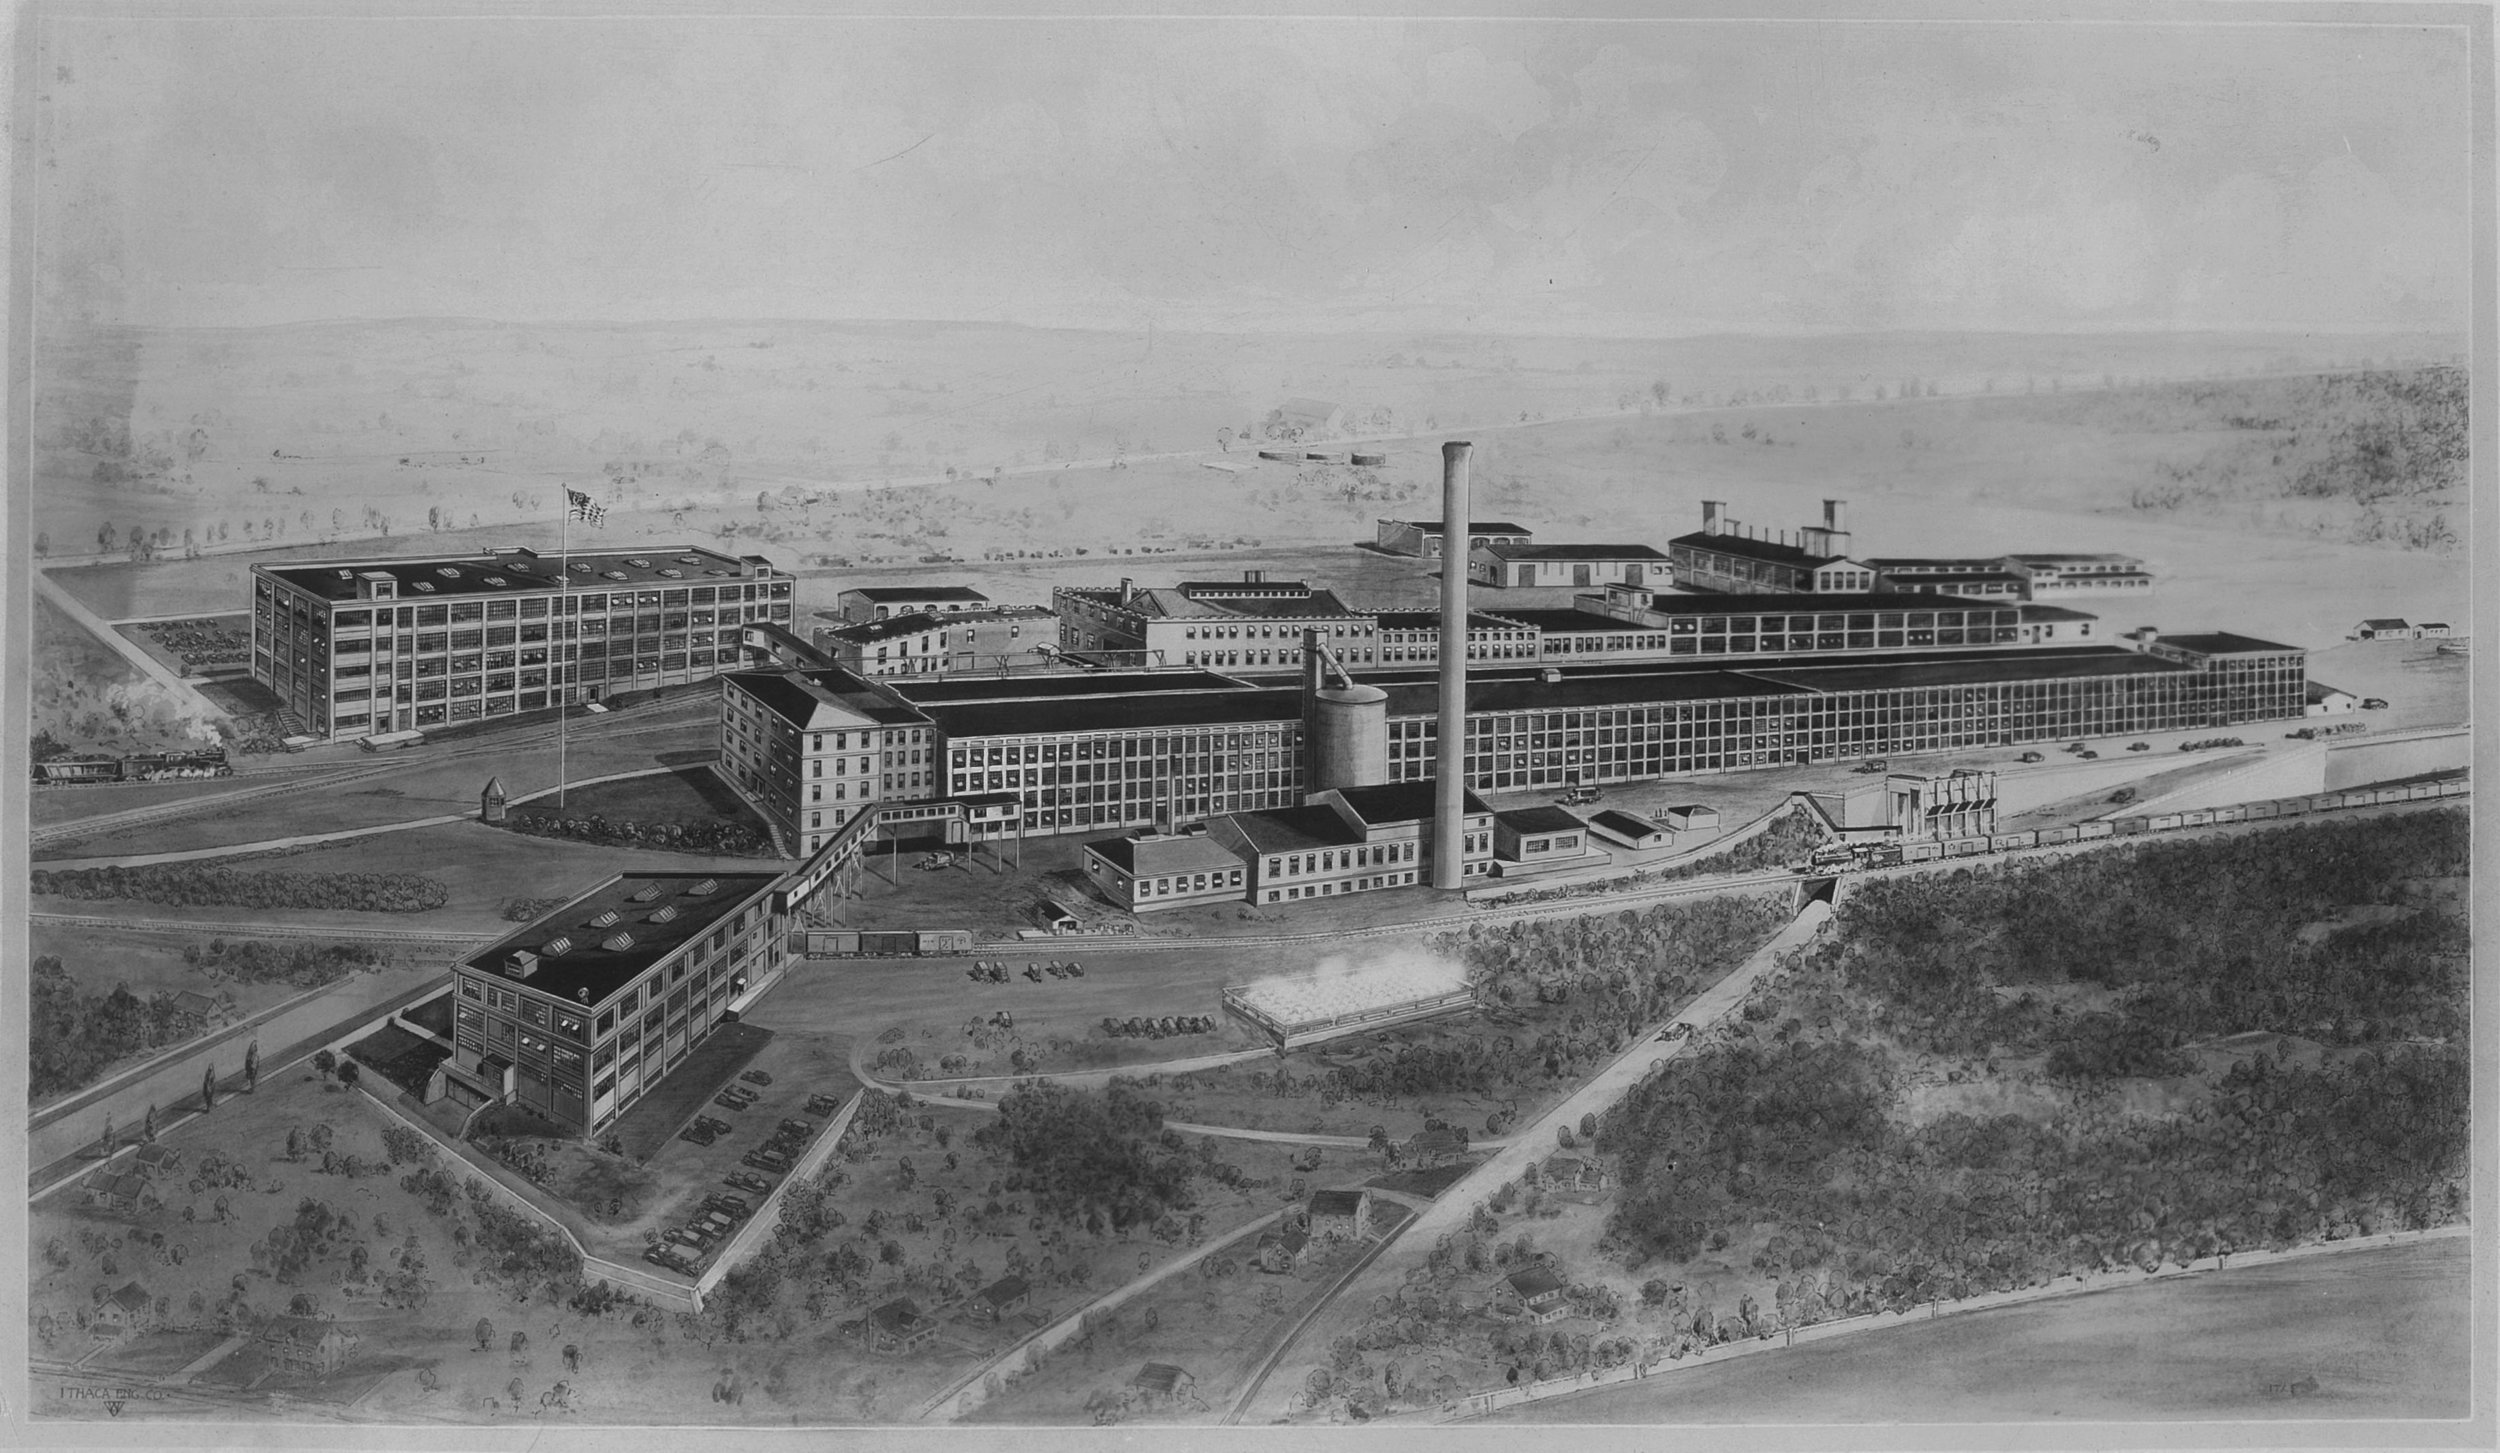 Chain-Works-William Reed Old Photo-Historic-site axon.jpg